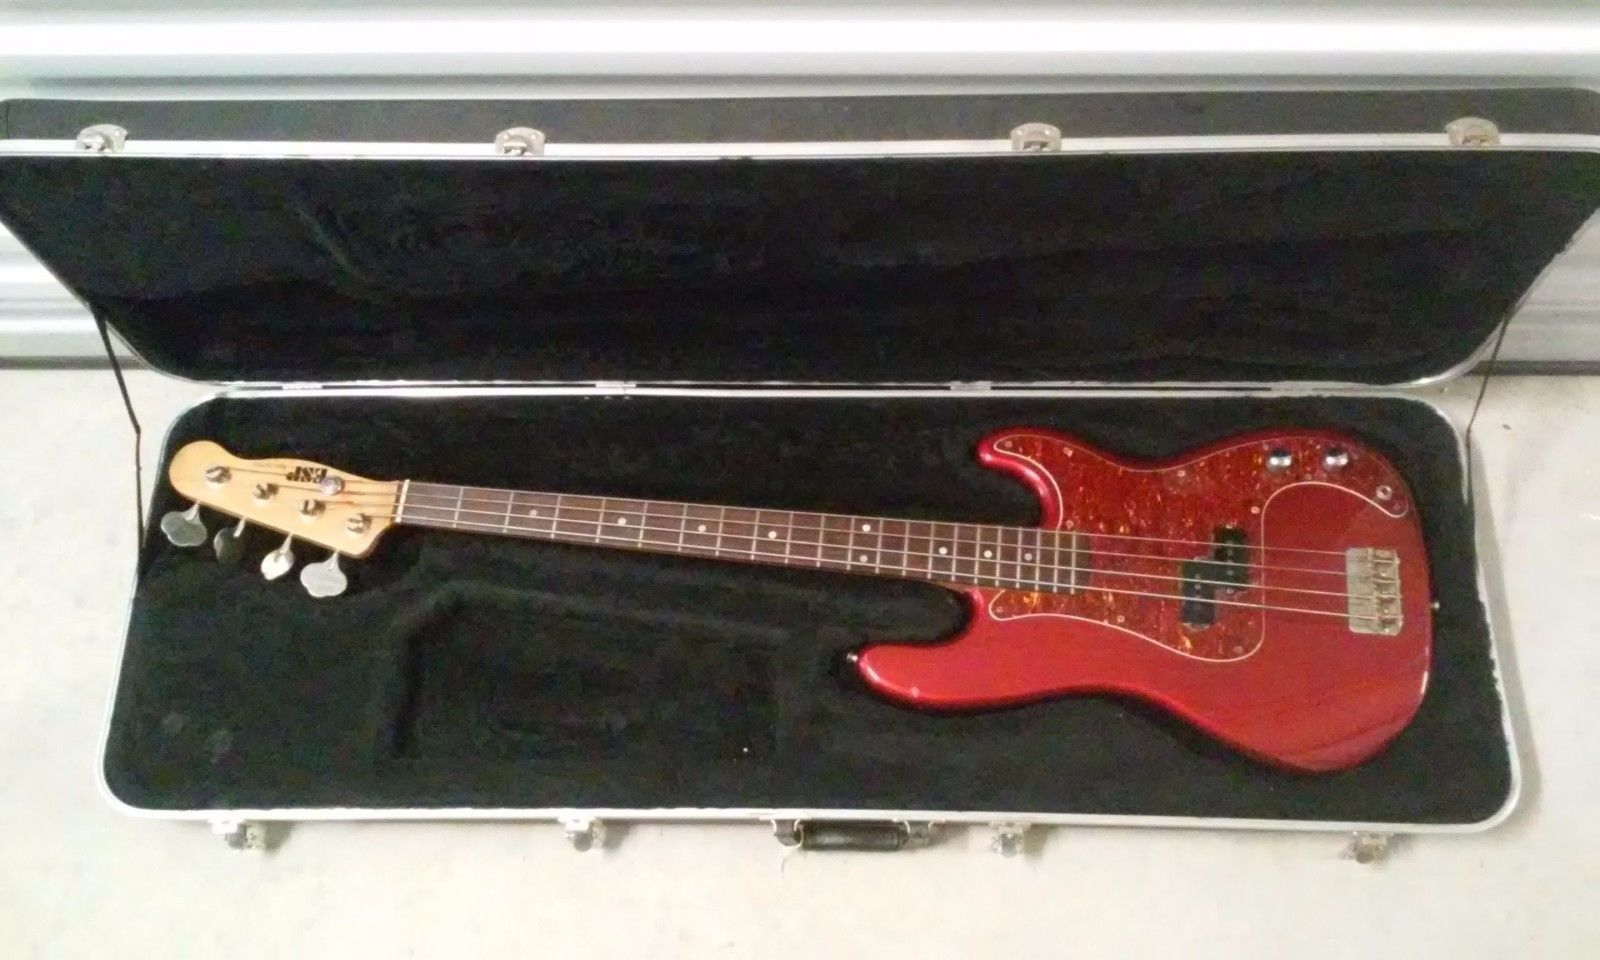 Esp 400 Series Precision Bass They Reissued These Models Later But This Is One Of The Original Ones Plays And Sounds Awesome It Has A Few Dings And Scratche